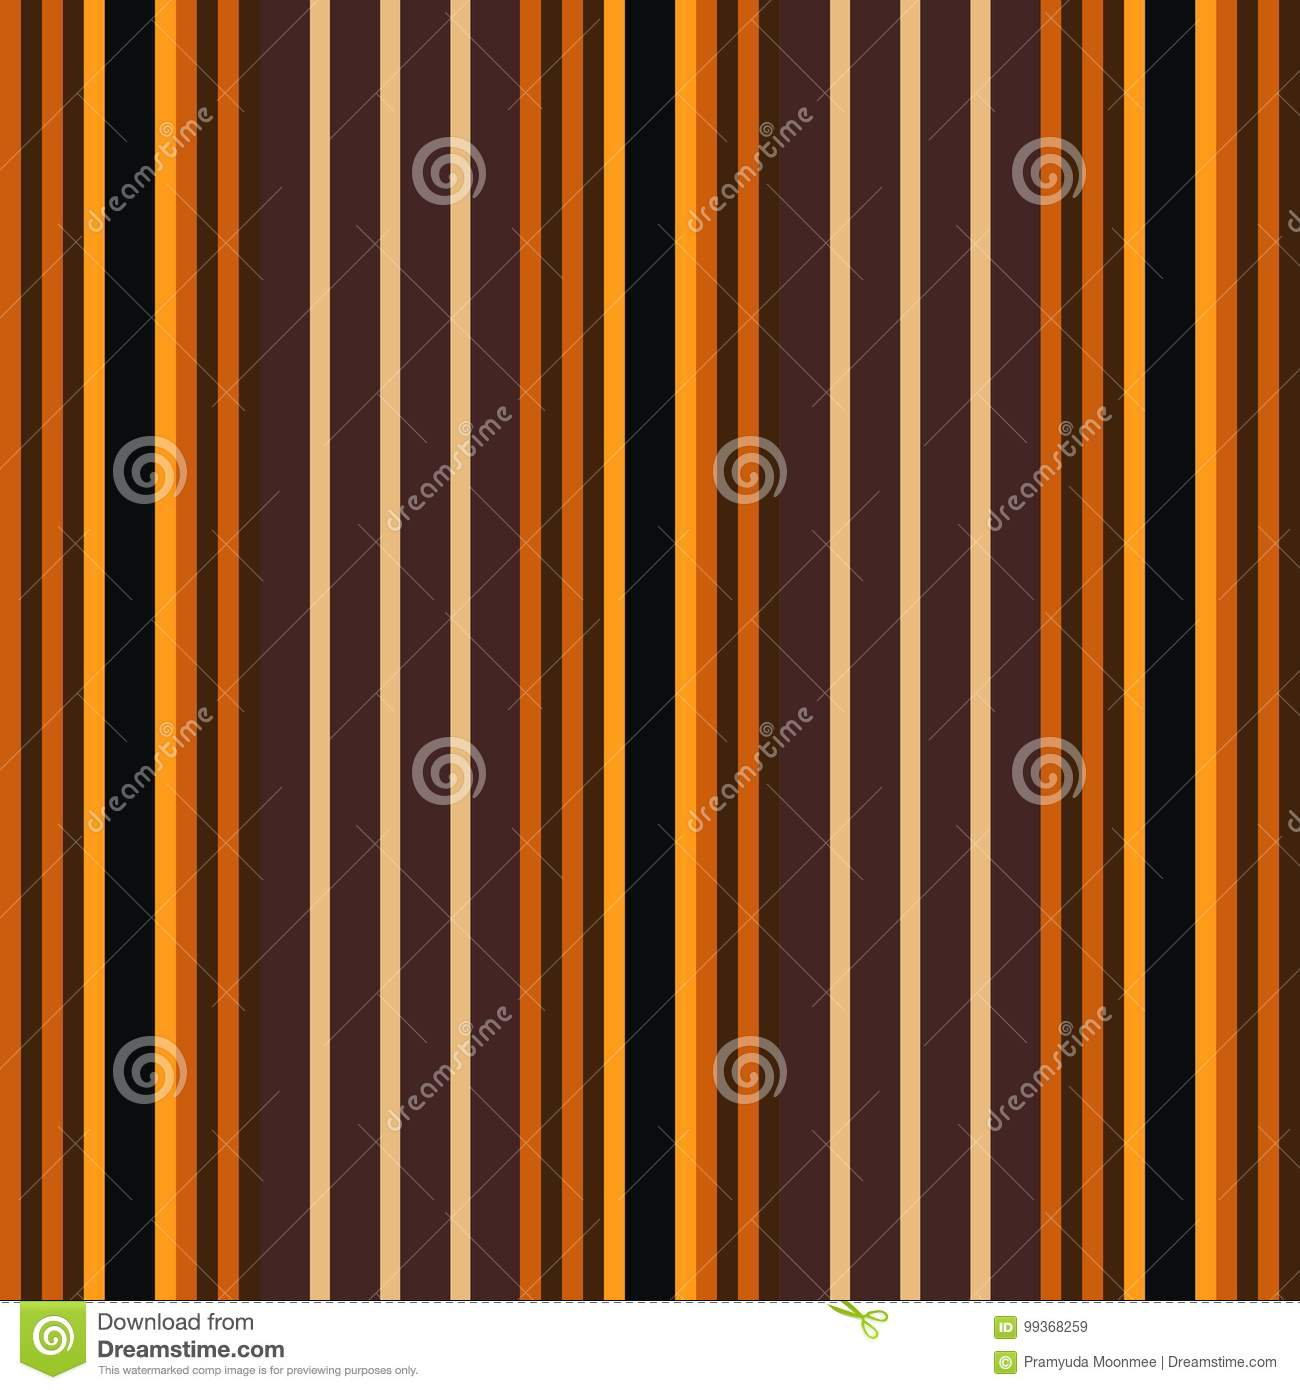 Best Wallpaper Halloween Vintage - halloween-vintage-orange-cream-striped-continuous-seamless-fabric-wallpaper-background-99368259  Trends_726725.jpg